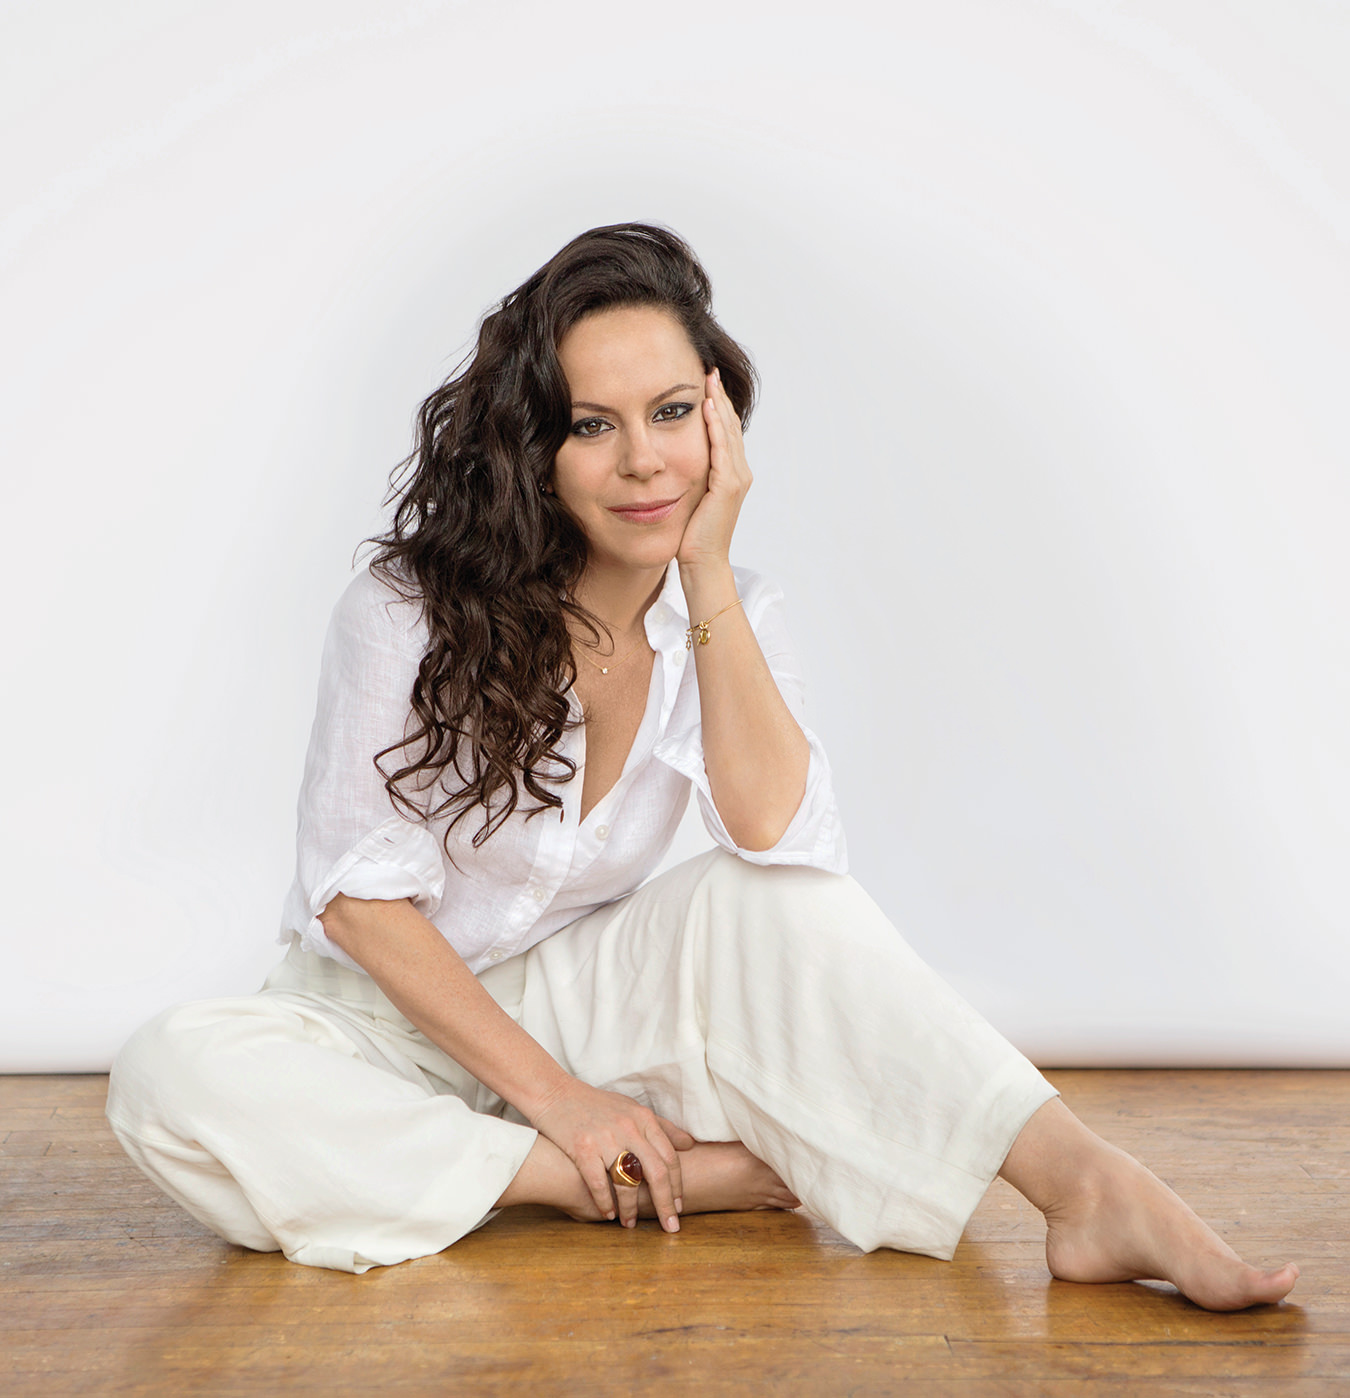 NUVO Autumn 2014: Brazilian Songstress Bebel Gilberto